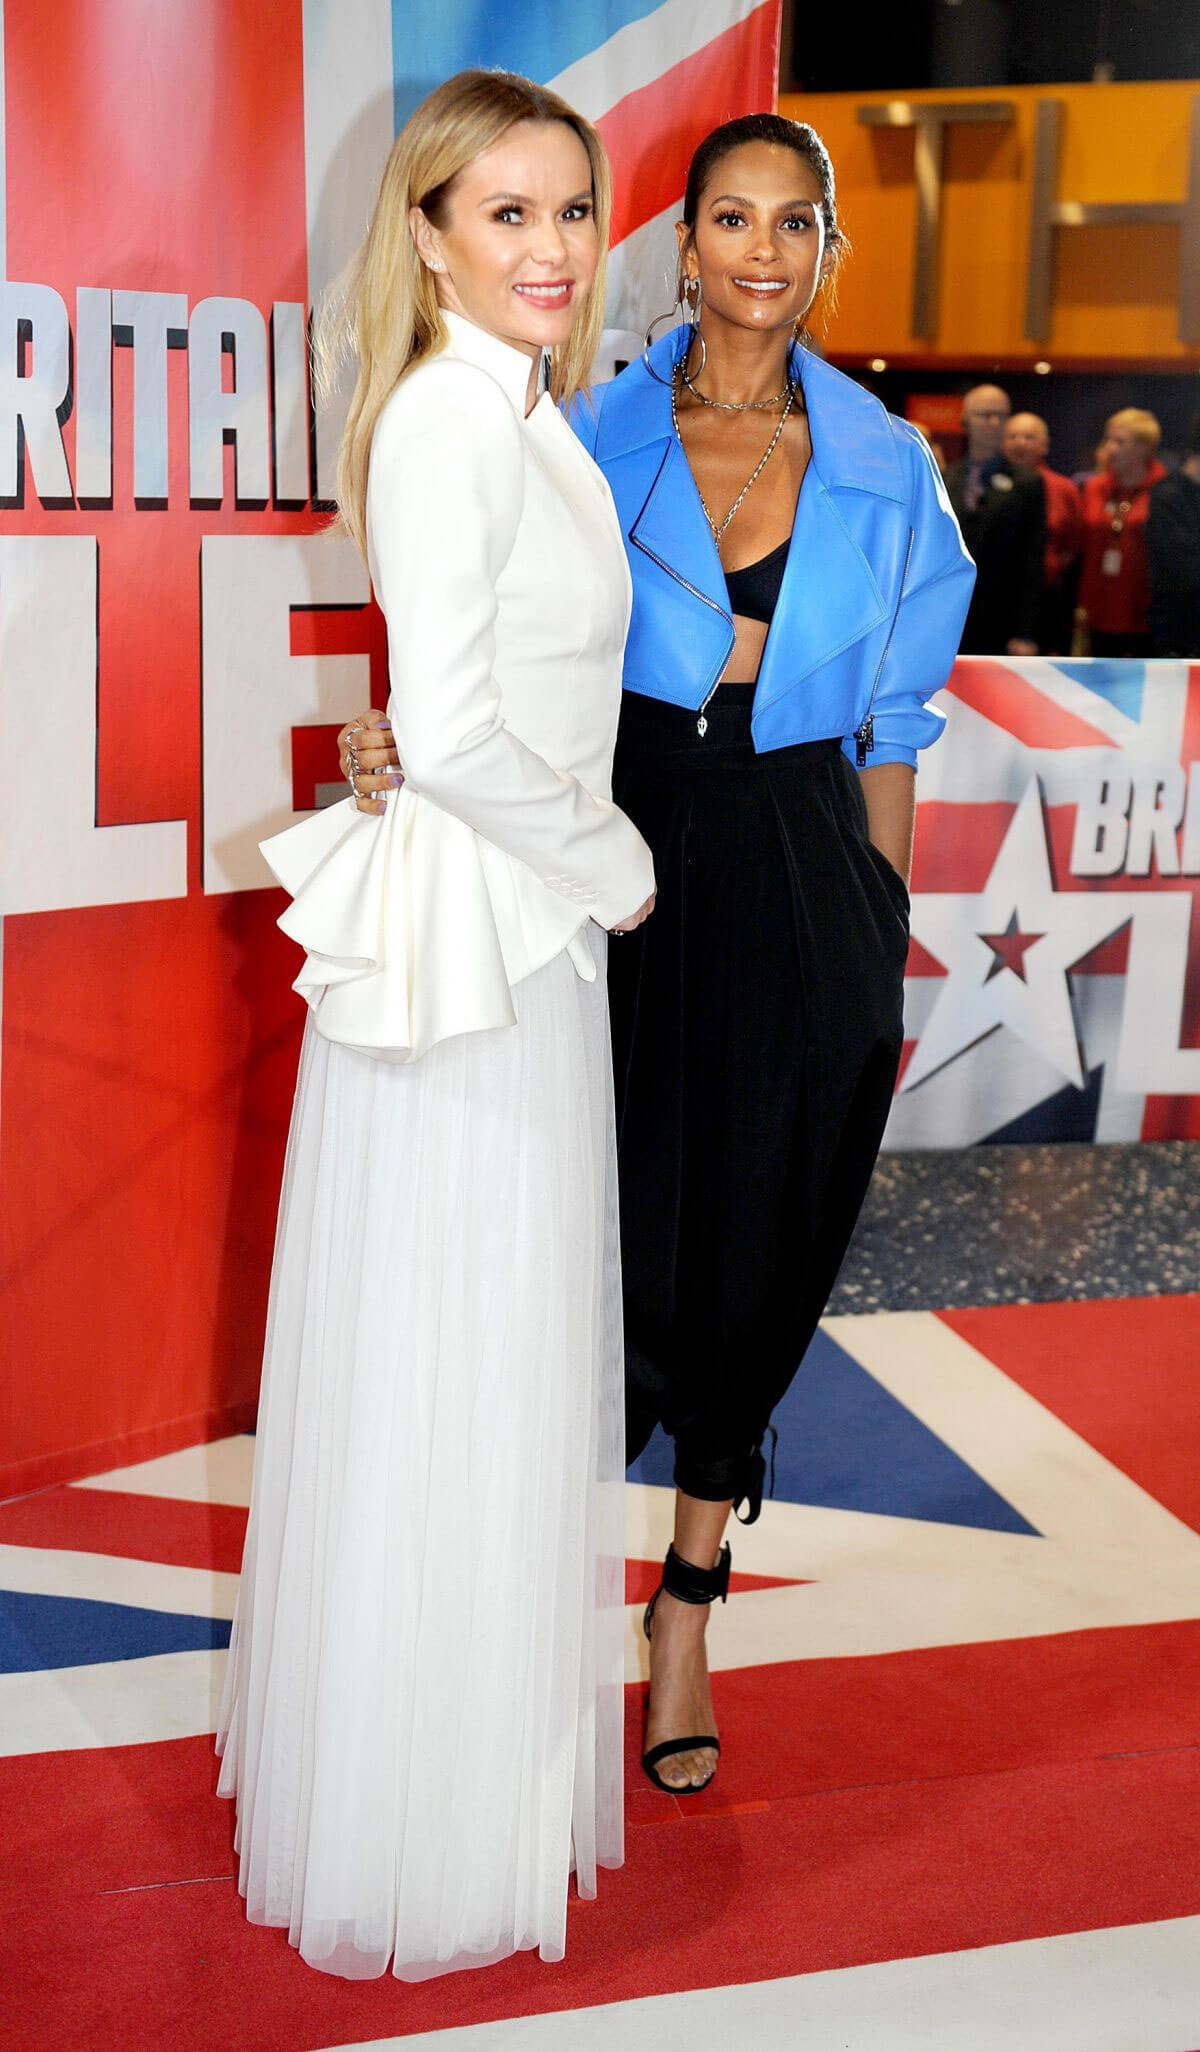 Alesha Dixon and Amanda Holden Stills at Britain's Got Talent Auditions in Manchester 2018/02/08